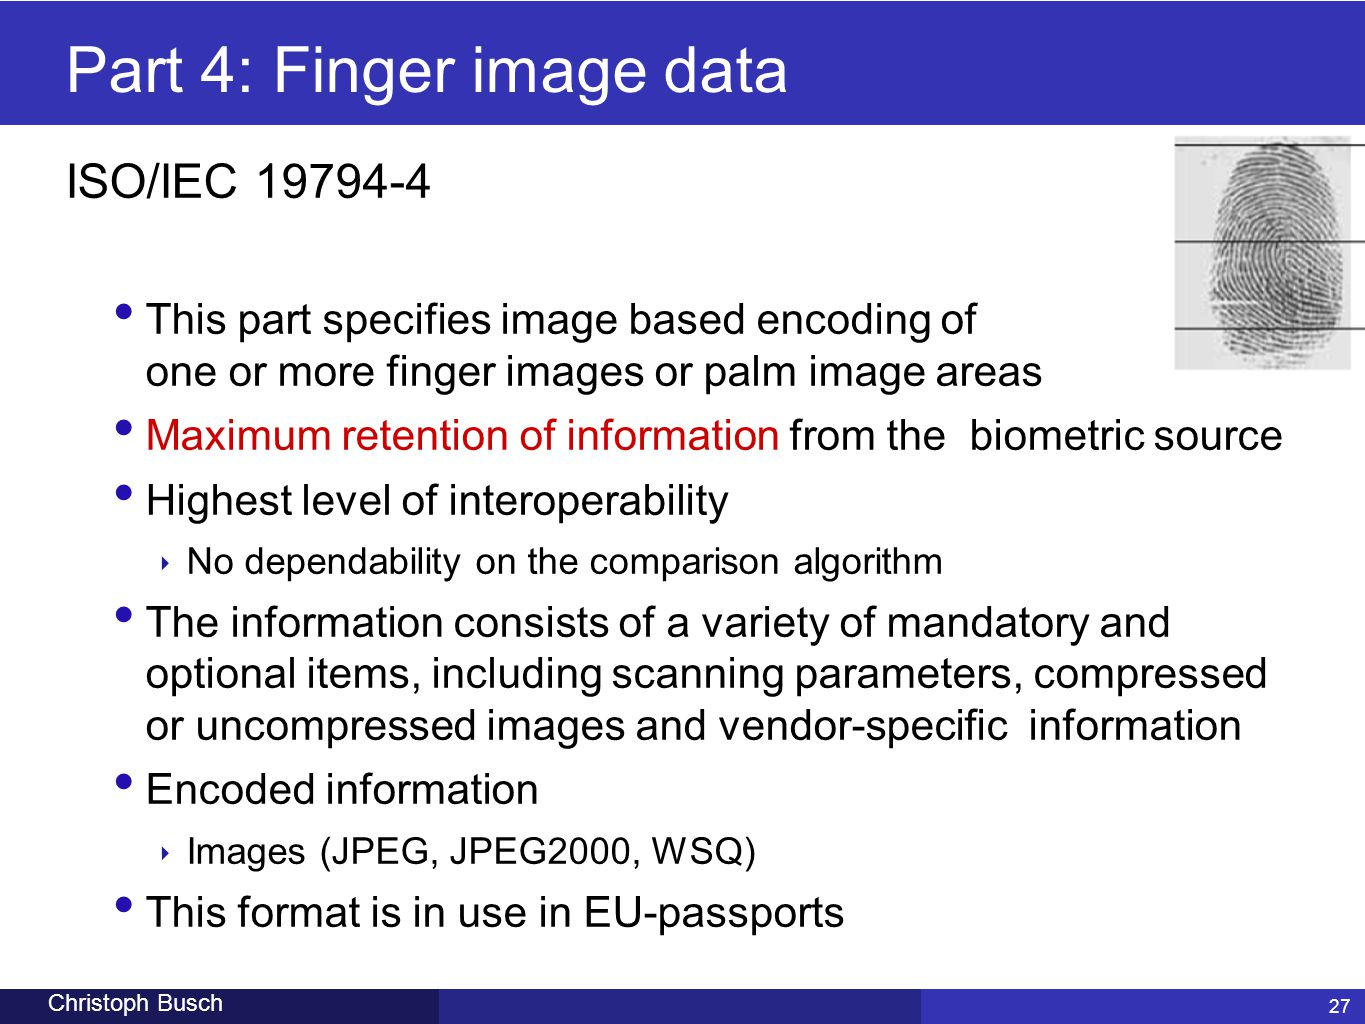 Part 4: Finger image data